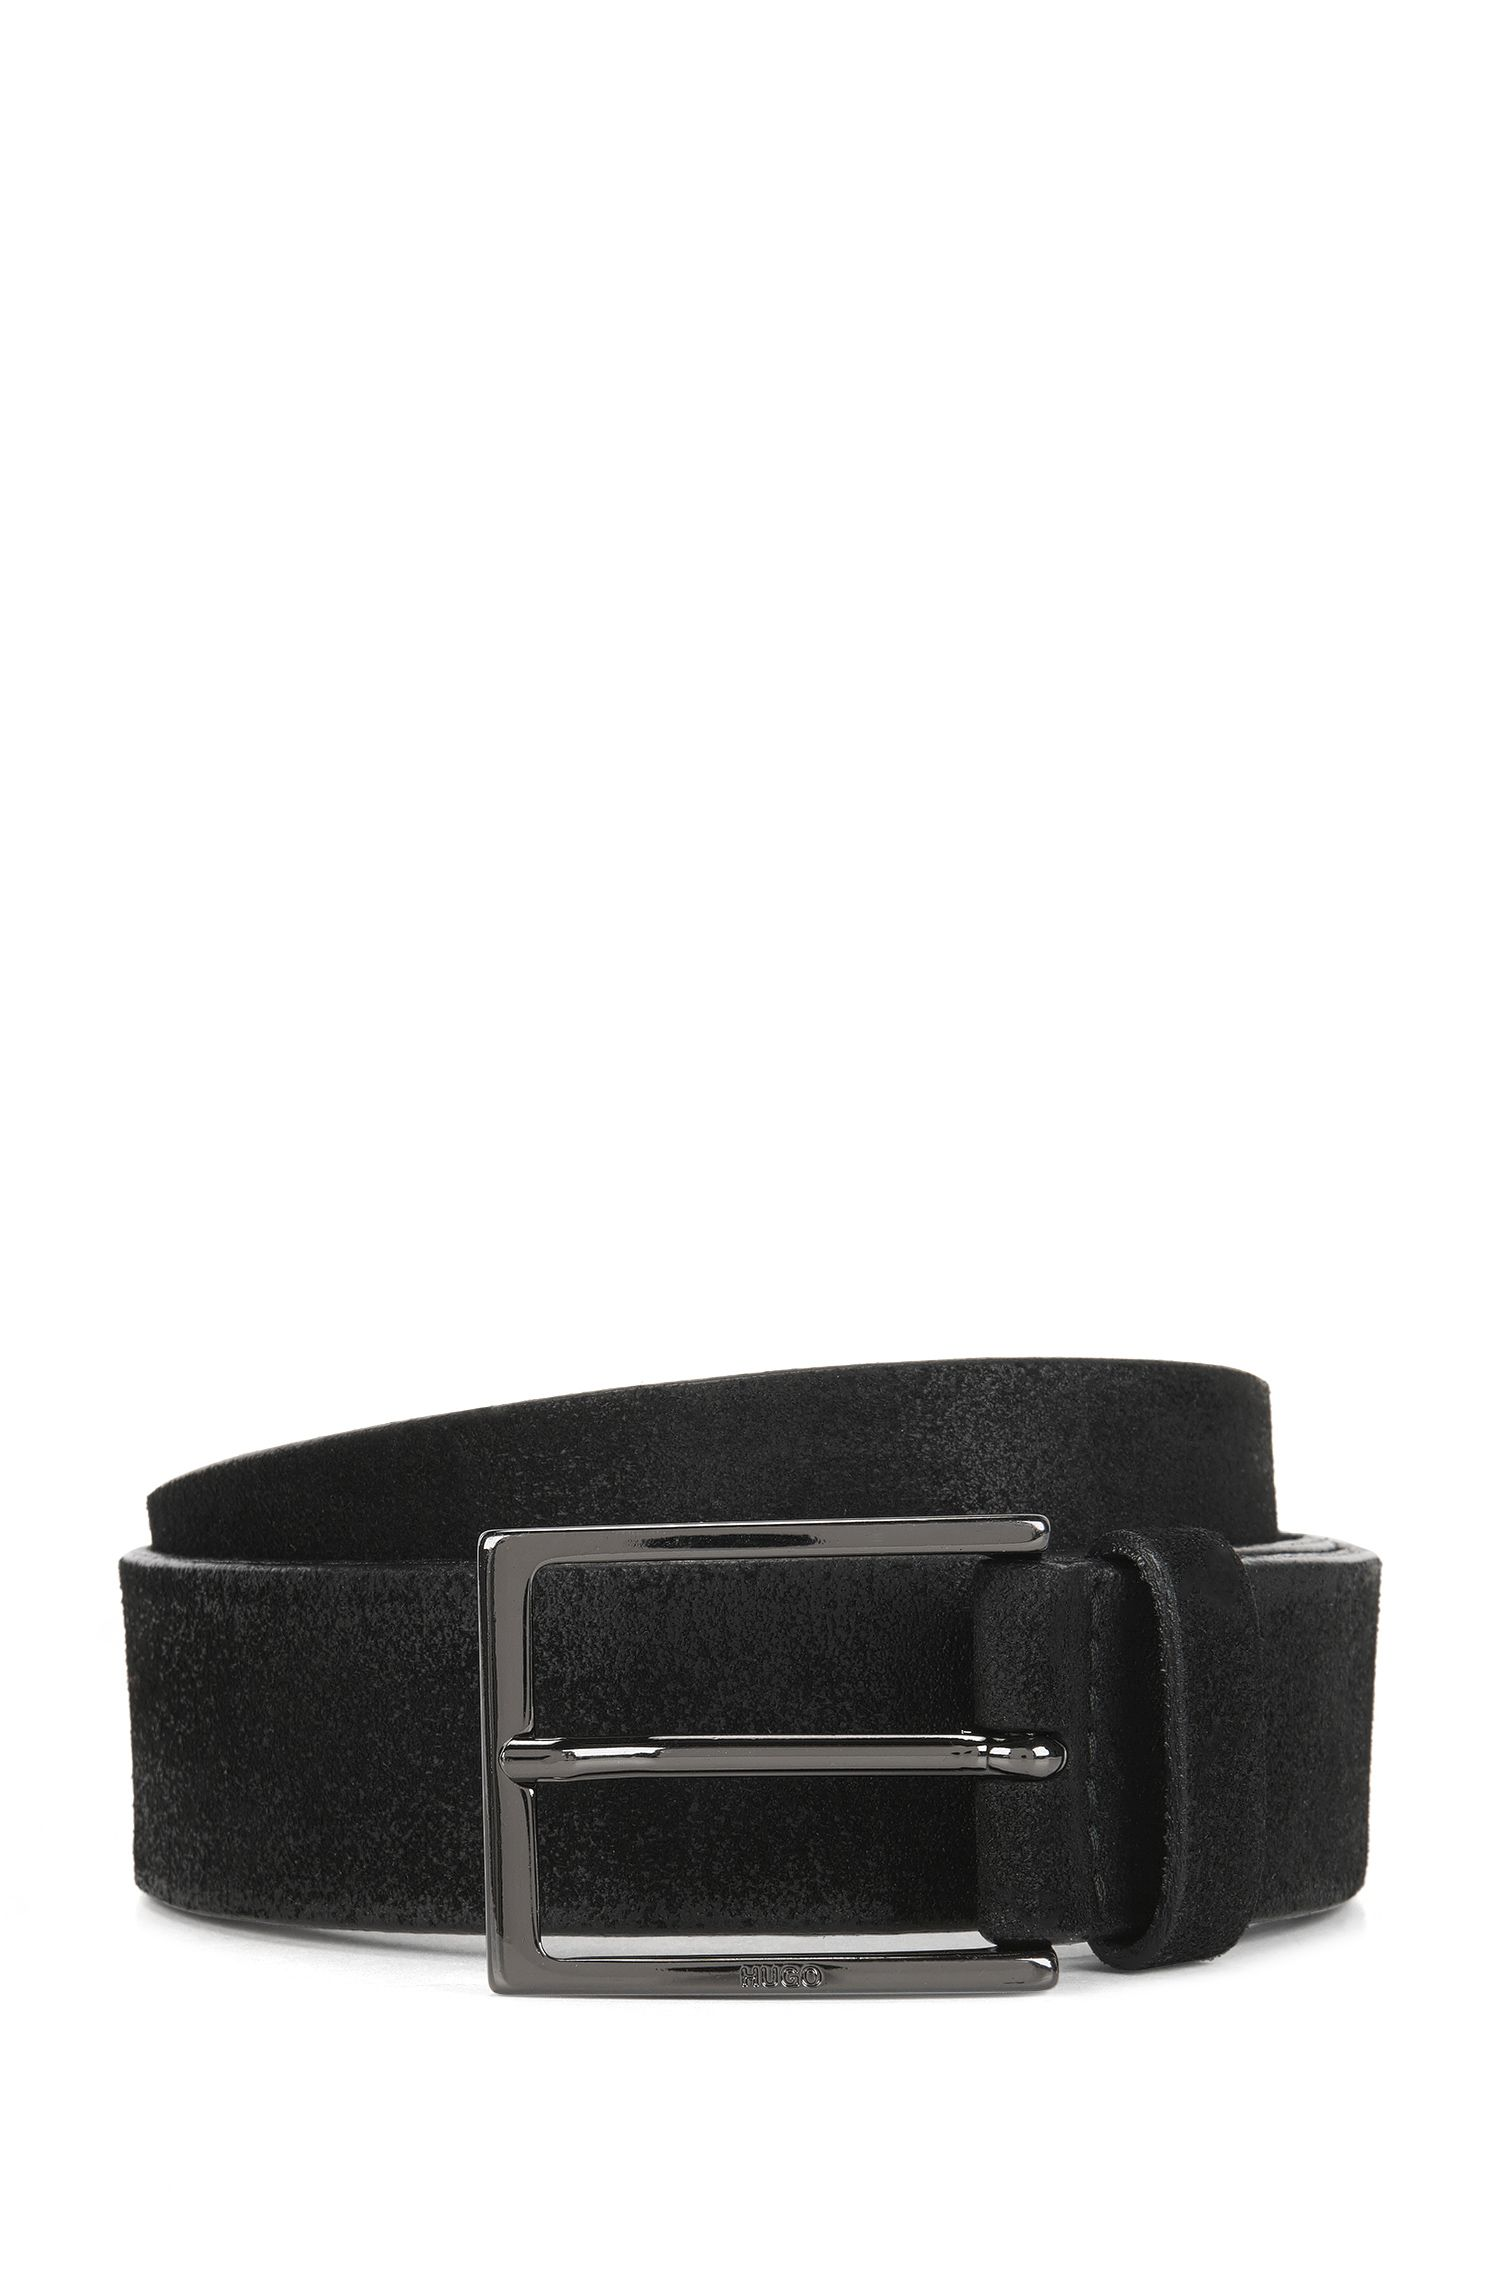 Brushed suede belt with polished gunmetal pin buckle